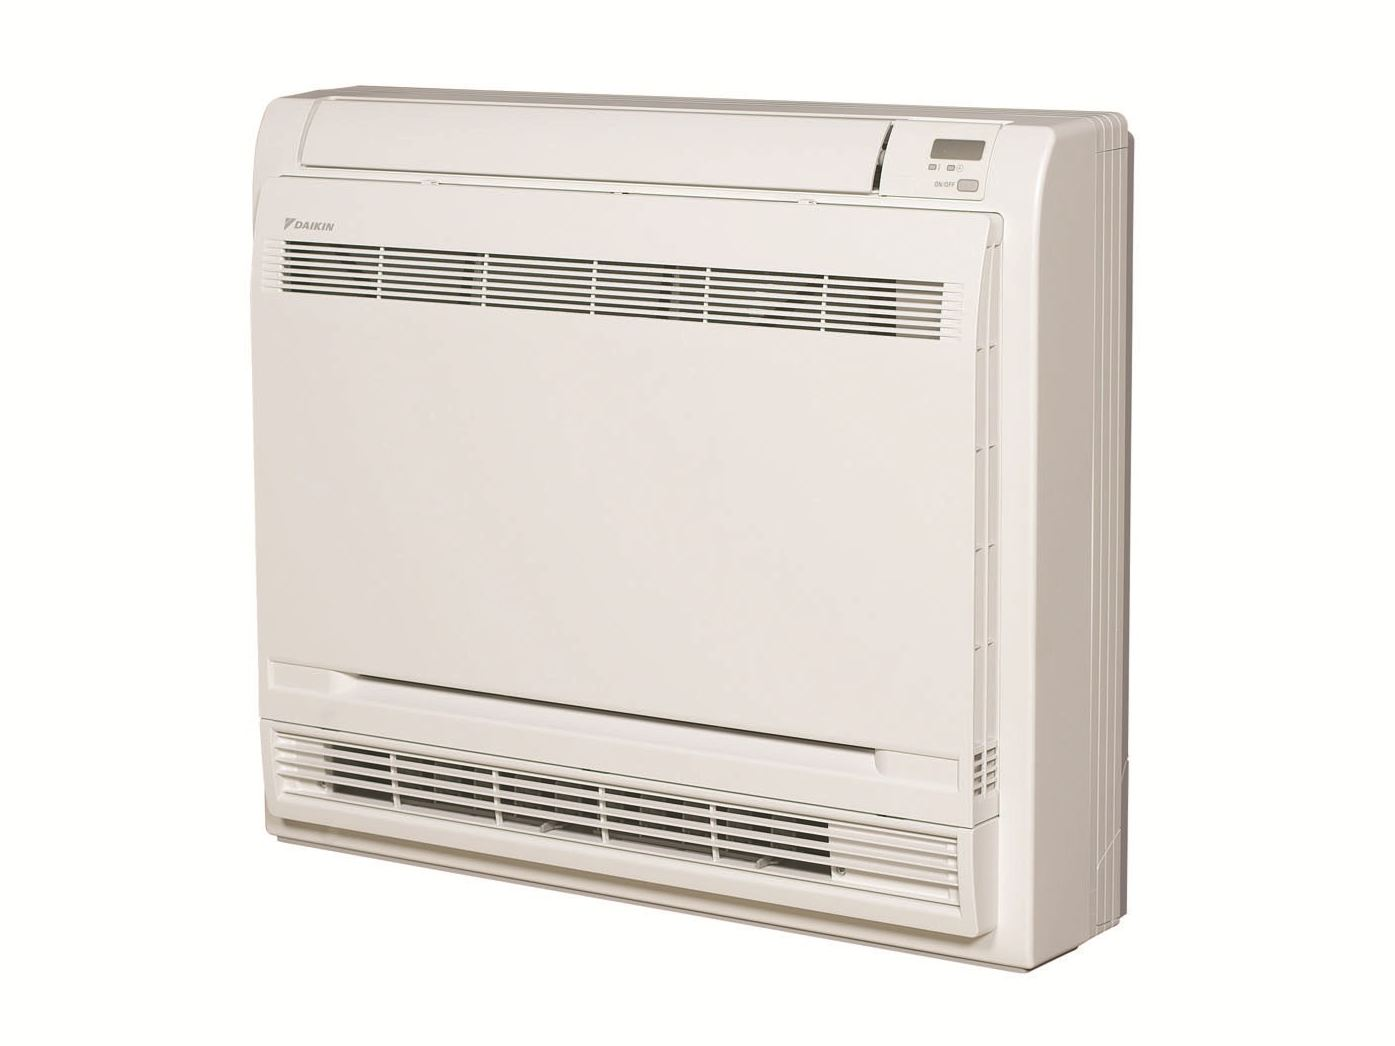 #7F664C FWXV Fan Coil Unit By DAIKIN Air Conditioning Italy Best 2933 Floor Standing Ac Unit photos with 1395x1046 px on helpvideos.info - Air Conditioners, Air Coolers and more